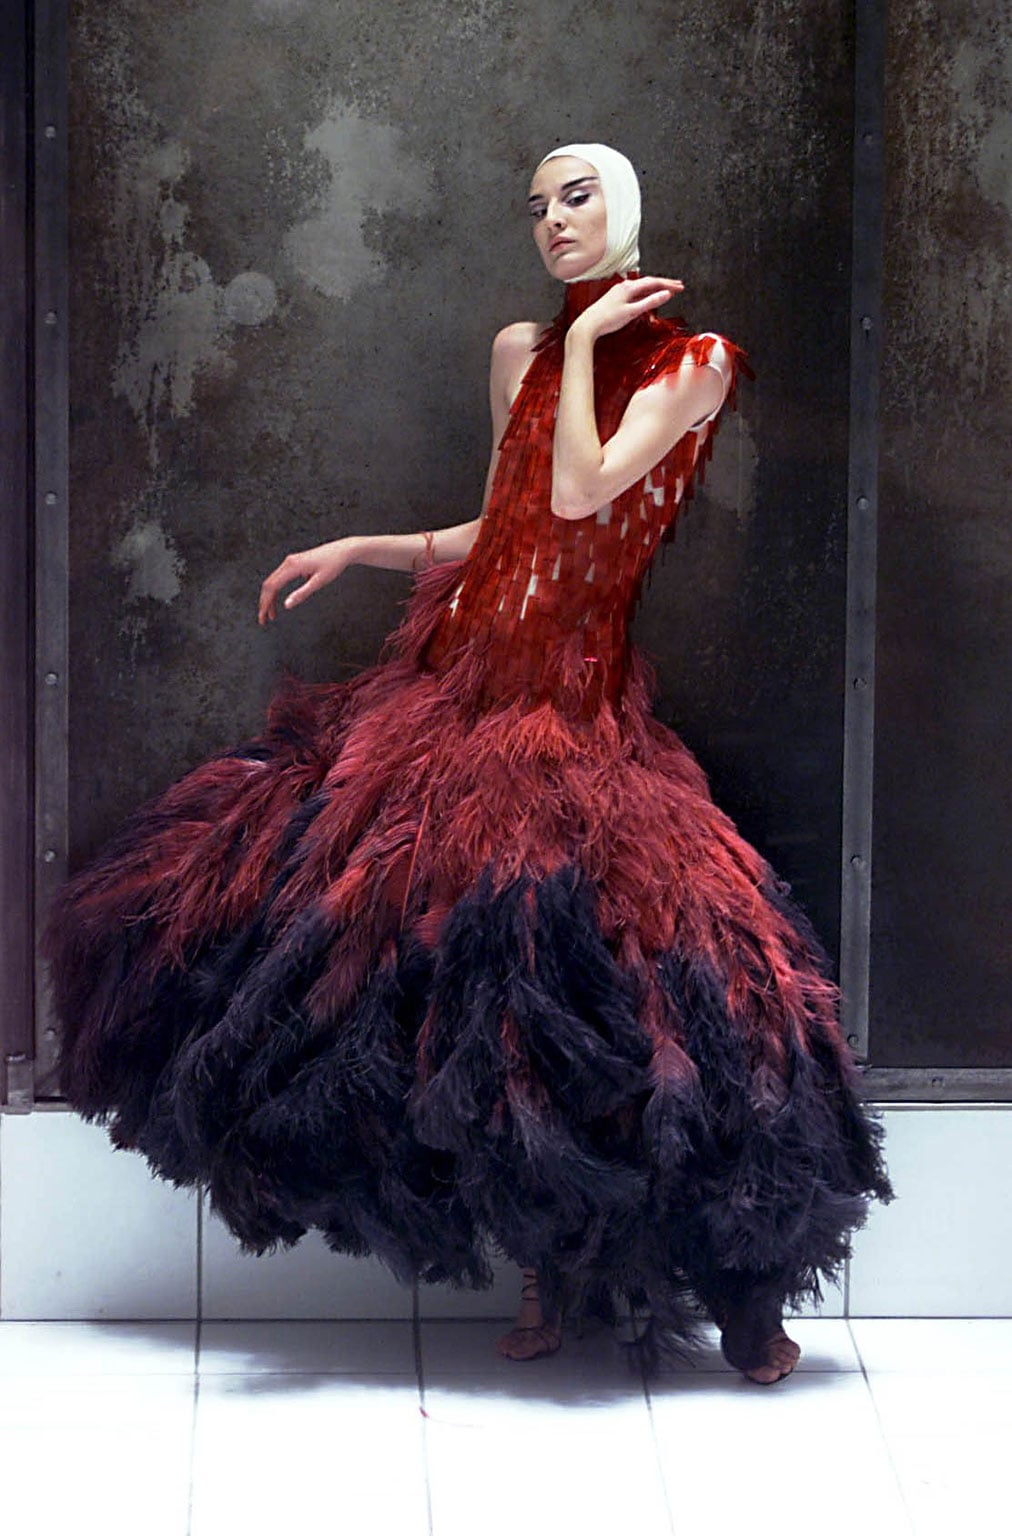 Alexander McQueen, Dress of dyed ostrich feathers and hand-painted microscopic slides, Voss, S/S 2001